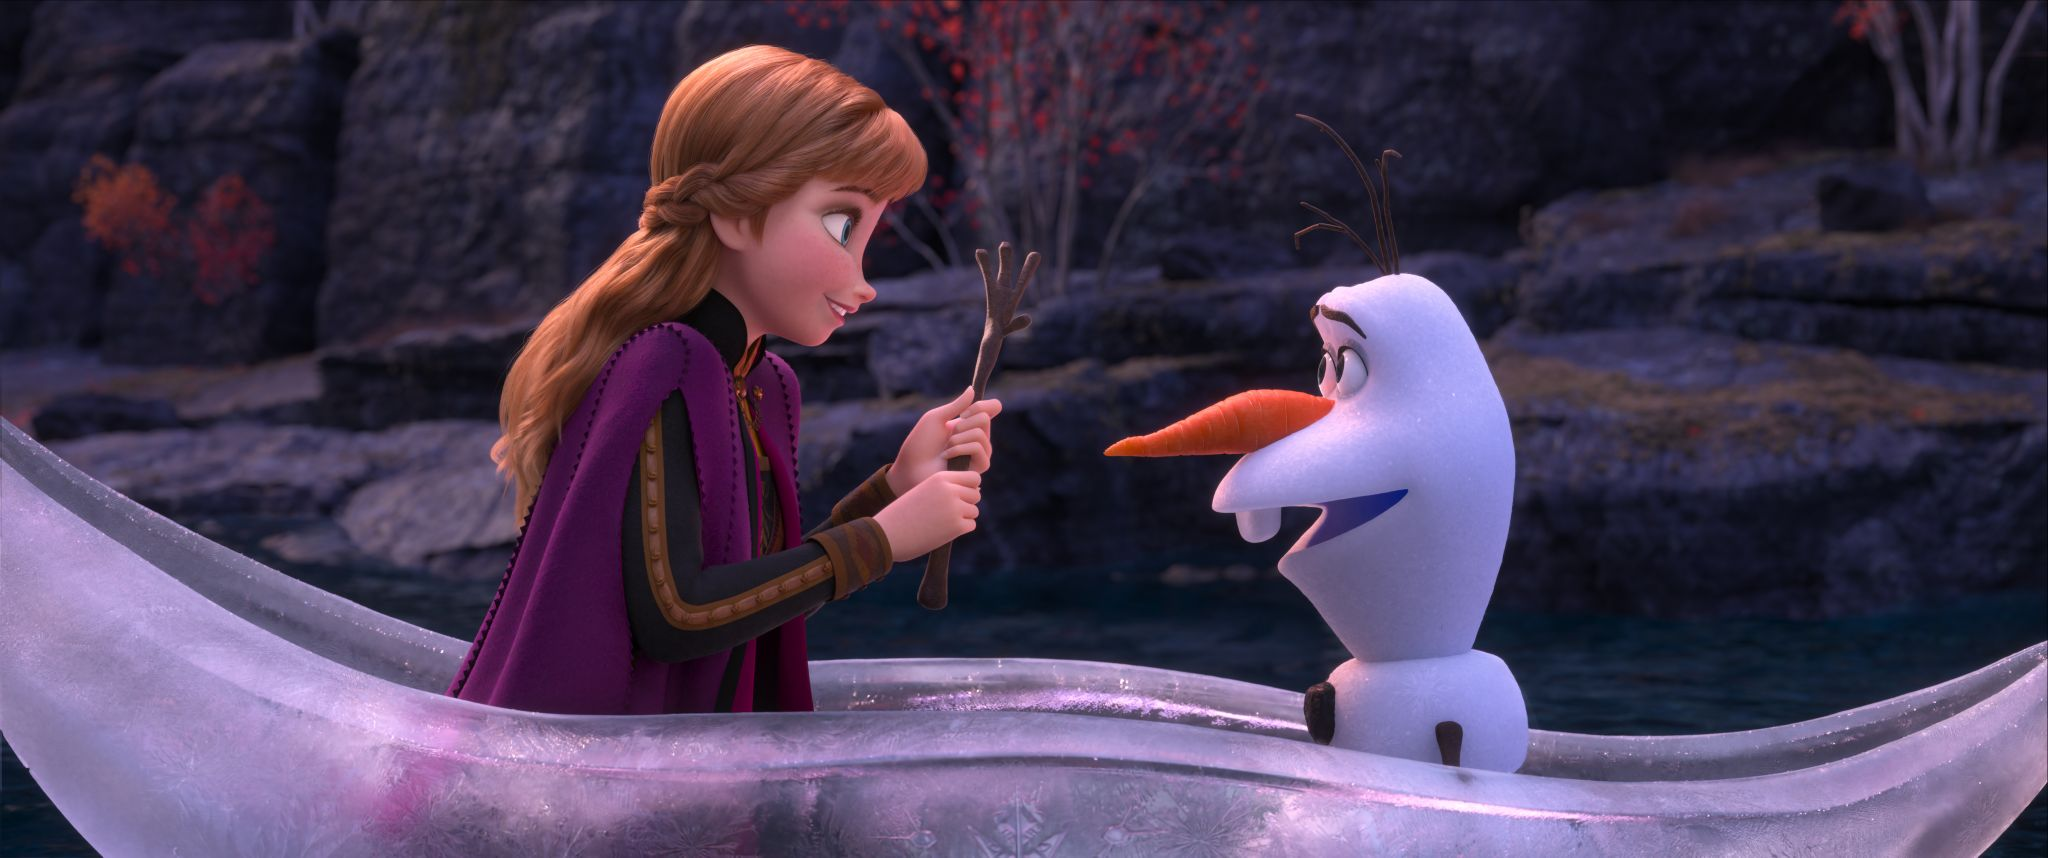 "In Walt Disney Animation Studios' ""Frozen 2, Anna (voice of Kristen Bell) and Olaf (voice of Josh Gad) venture far from Arendelle in a dangerous but remarkable journey to help Elsa find answers about the past."